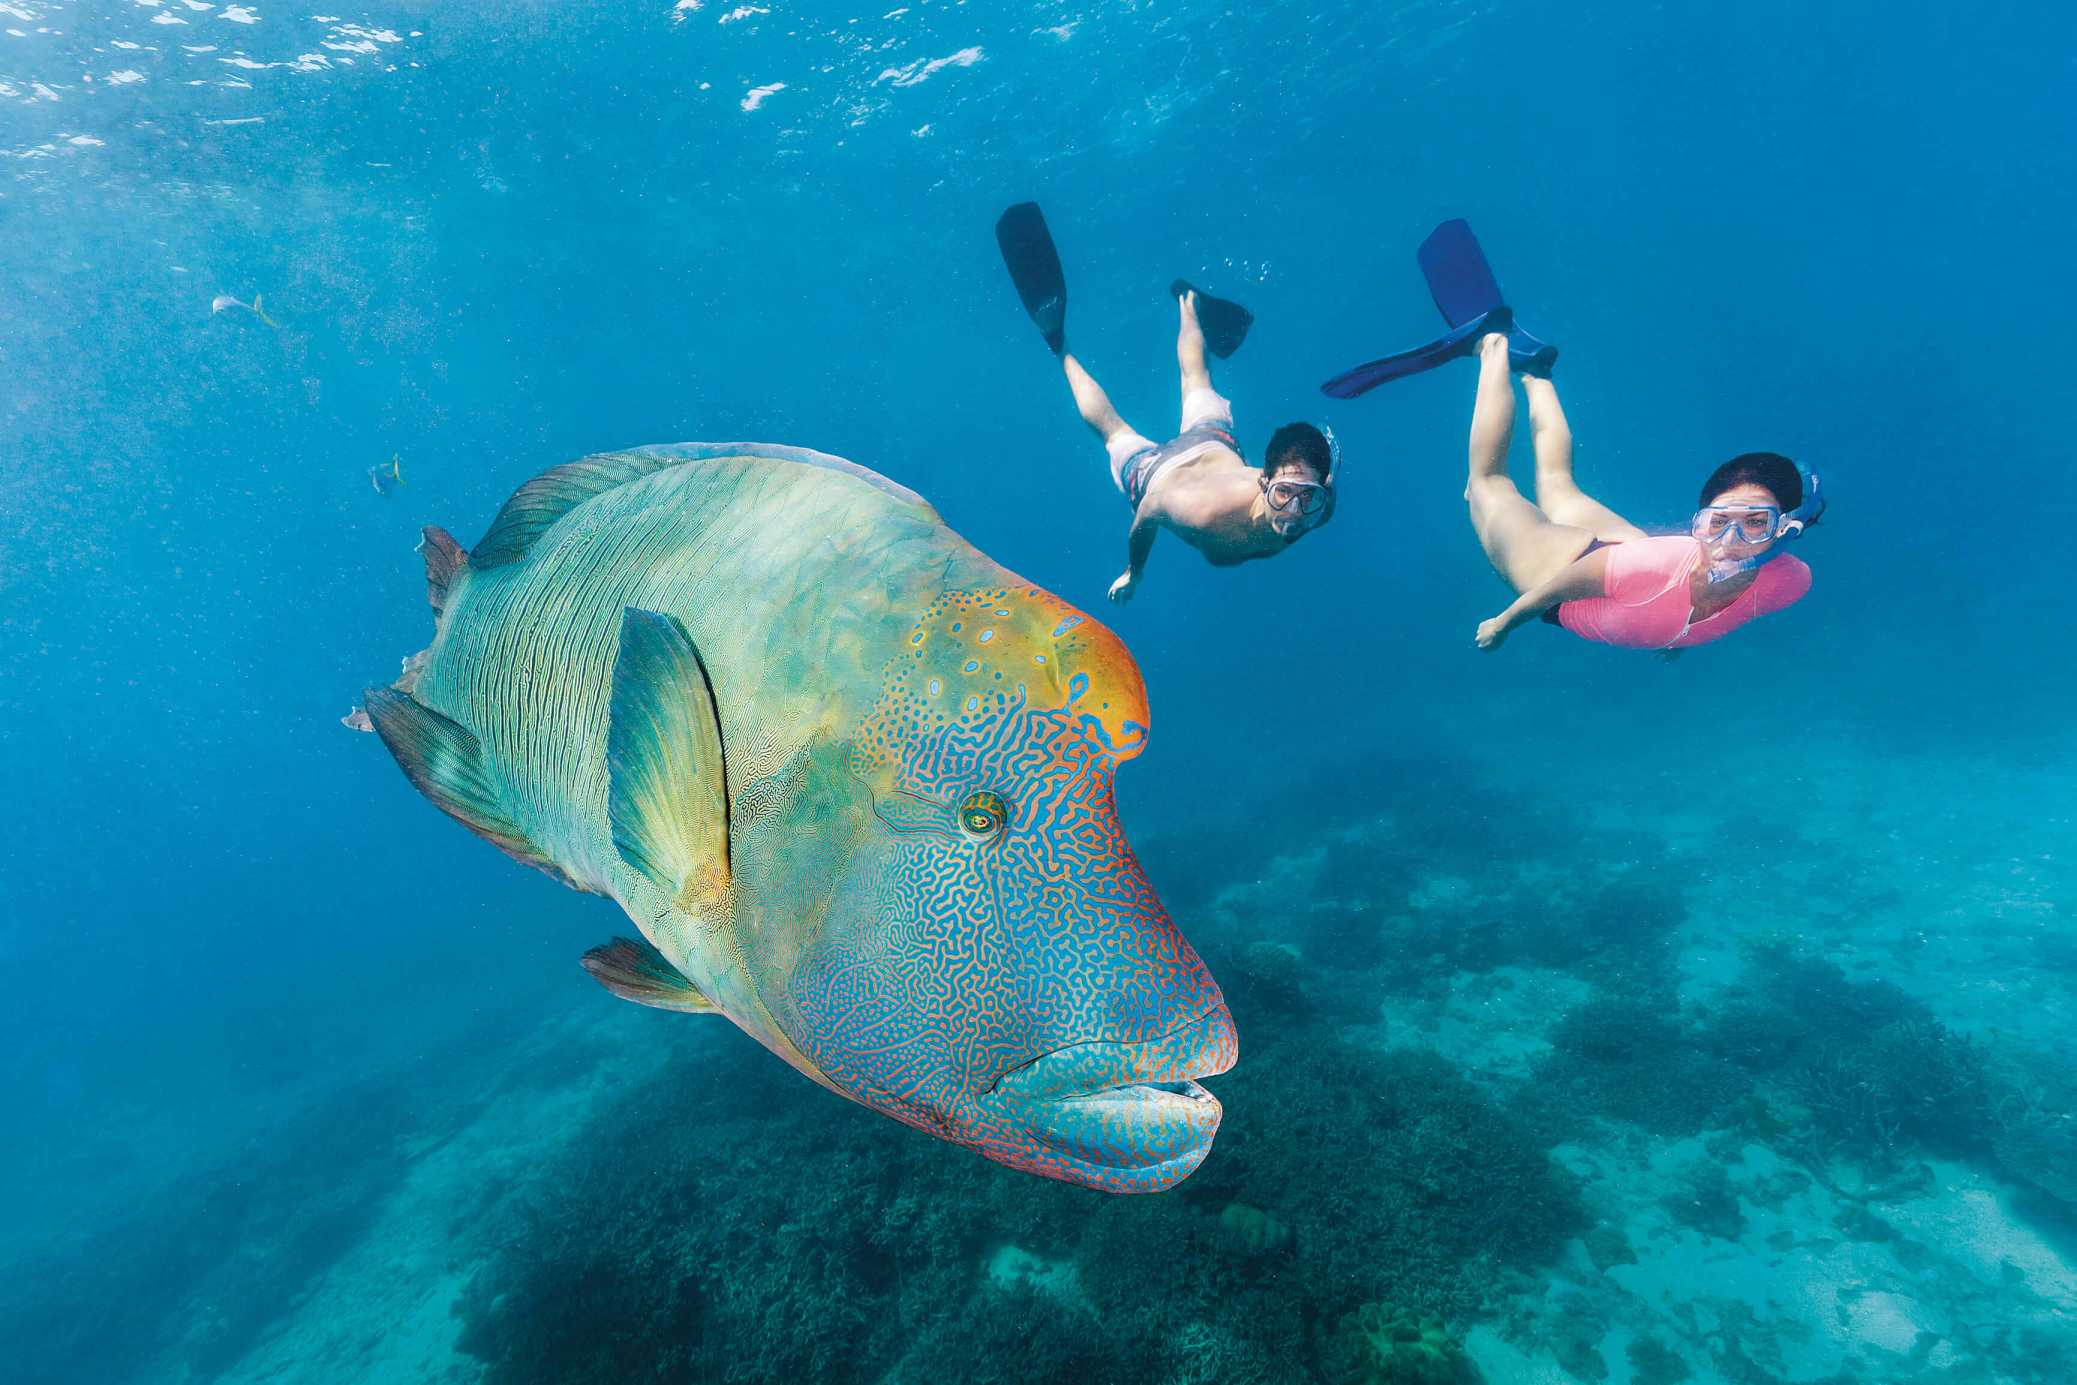 scuba diving at Great Barrier Reef